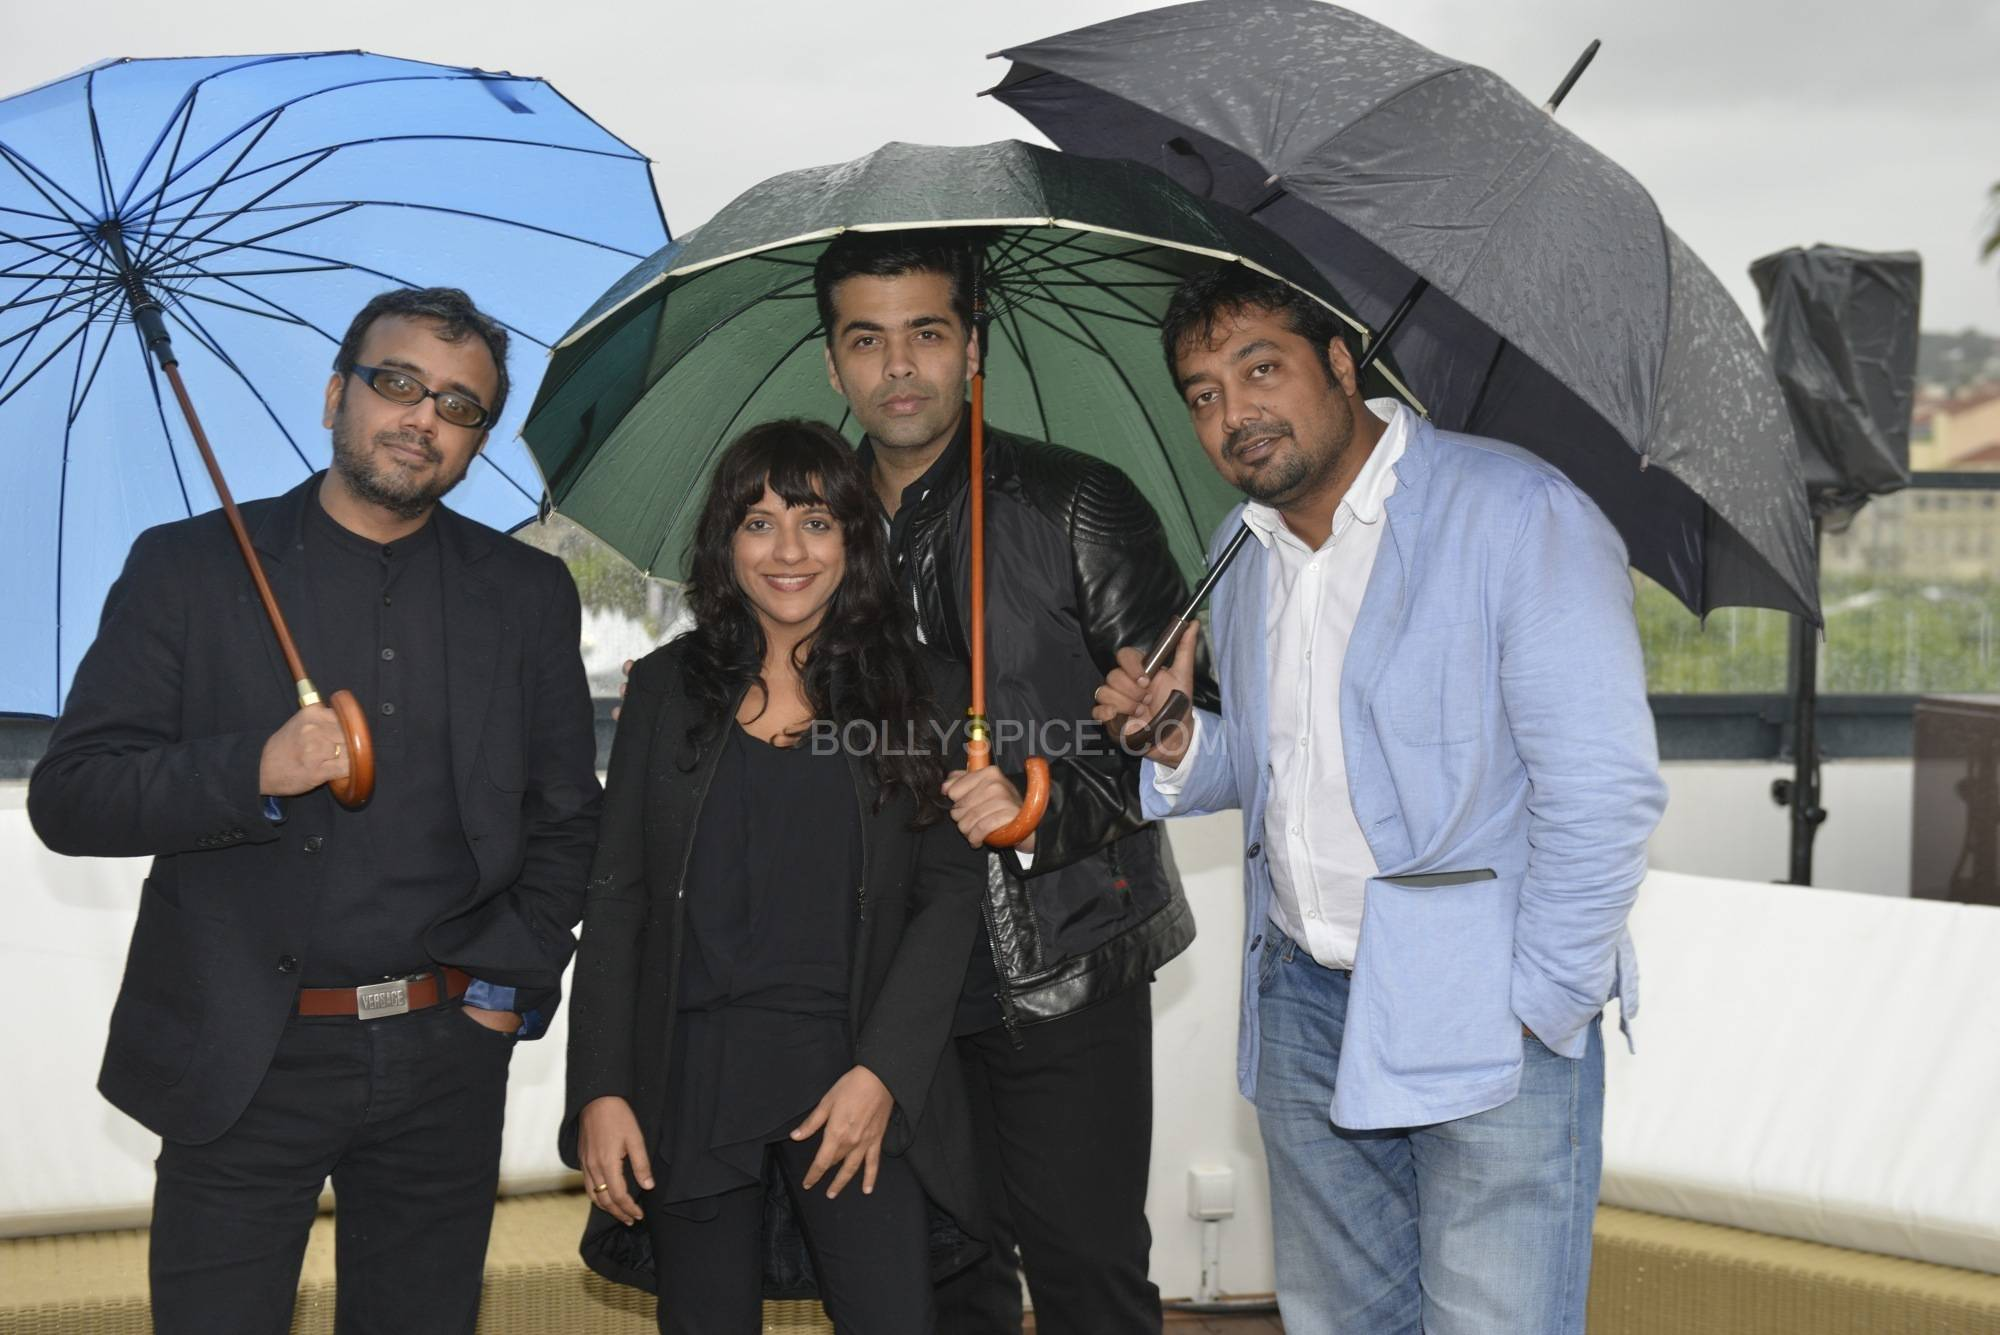 1612 Cannes 2013 Photo Nick Wall 2 Candid Photos of Karan, Zoya, Dibakar and Anurag in Cannes!